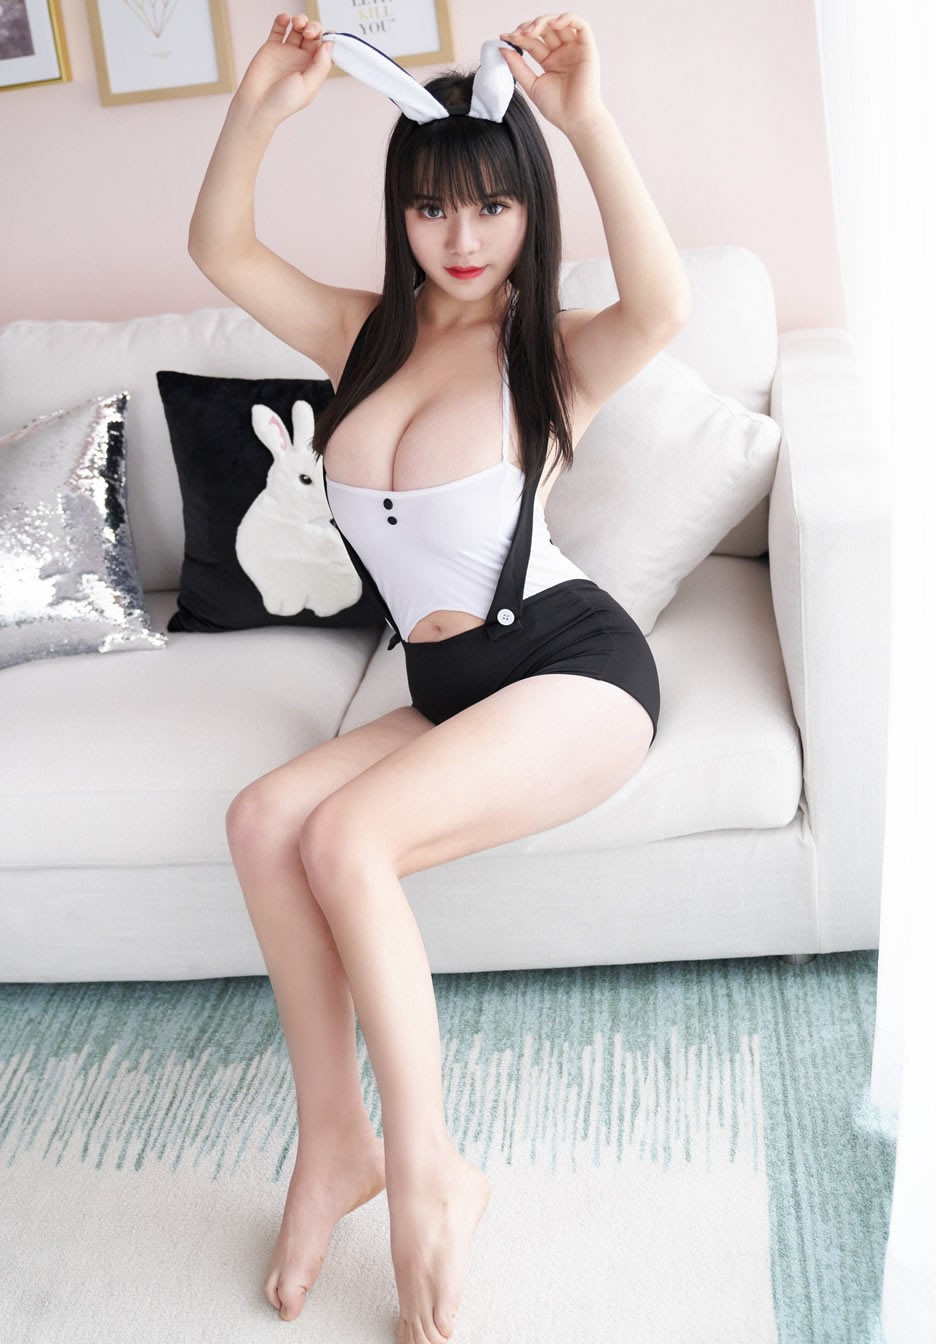 ★ ▂▃♥▃▂ ★Busty HoT BODY★ ASIAN ★323-825-6162 come to you